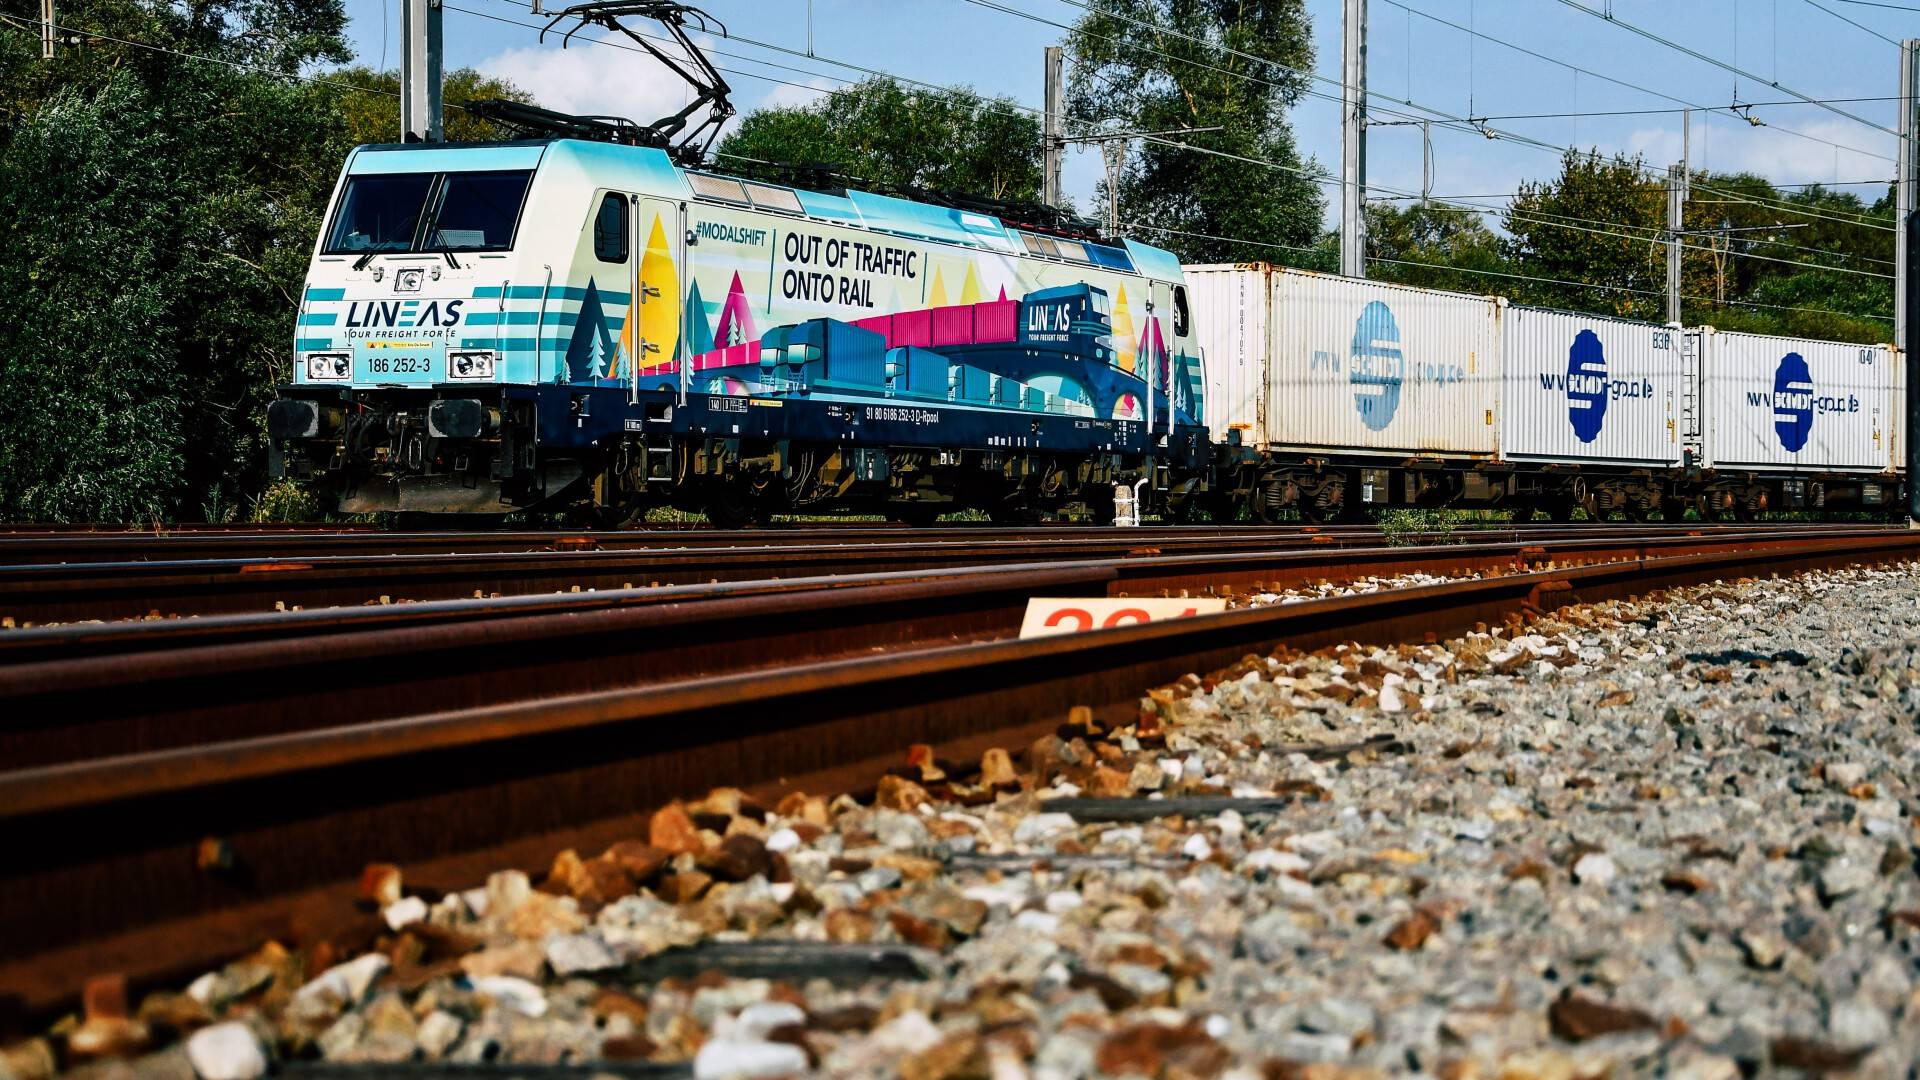 LINEAS starts intermodal service between Ghent and Milan